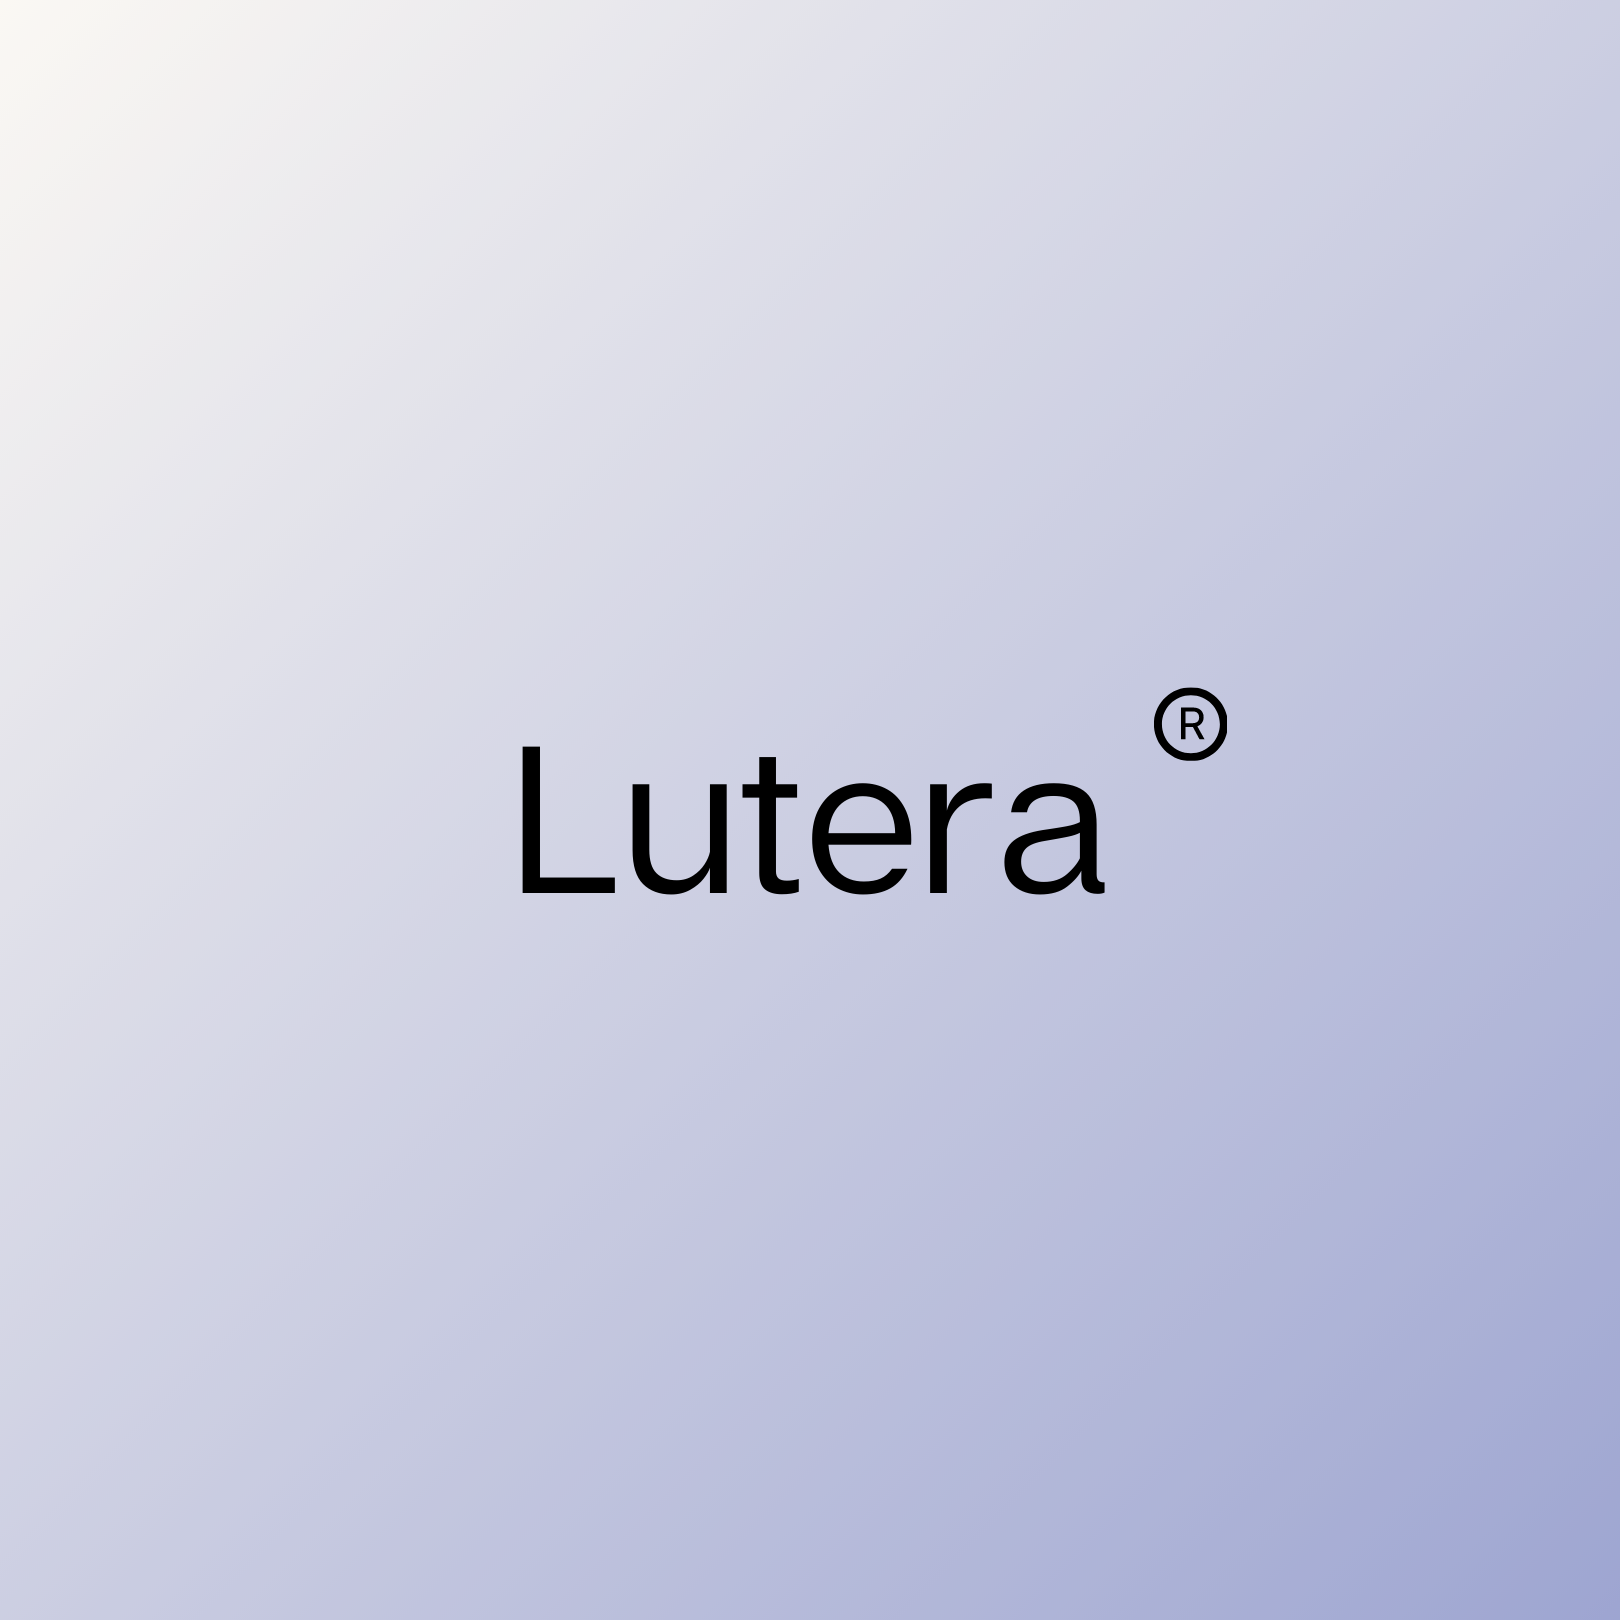 Buy Lutera birth control online at hellowisp.com